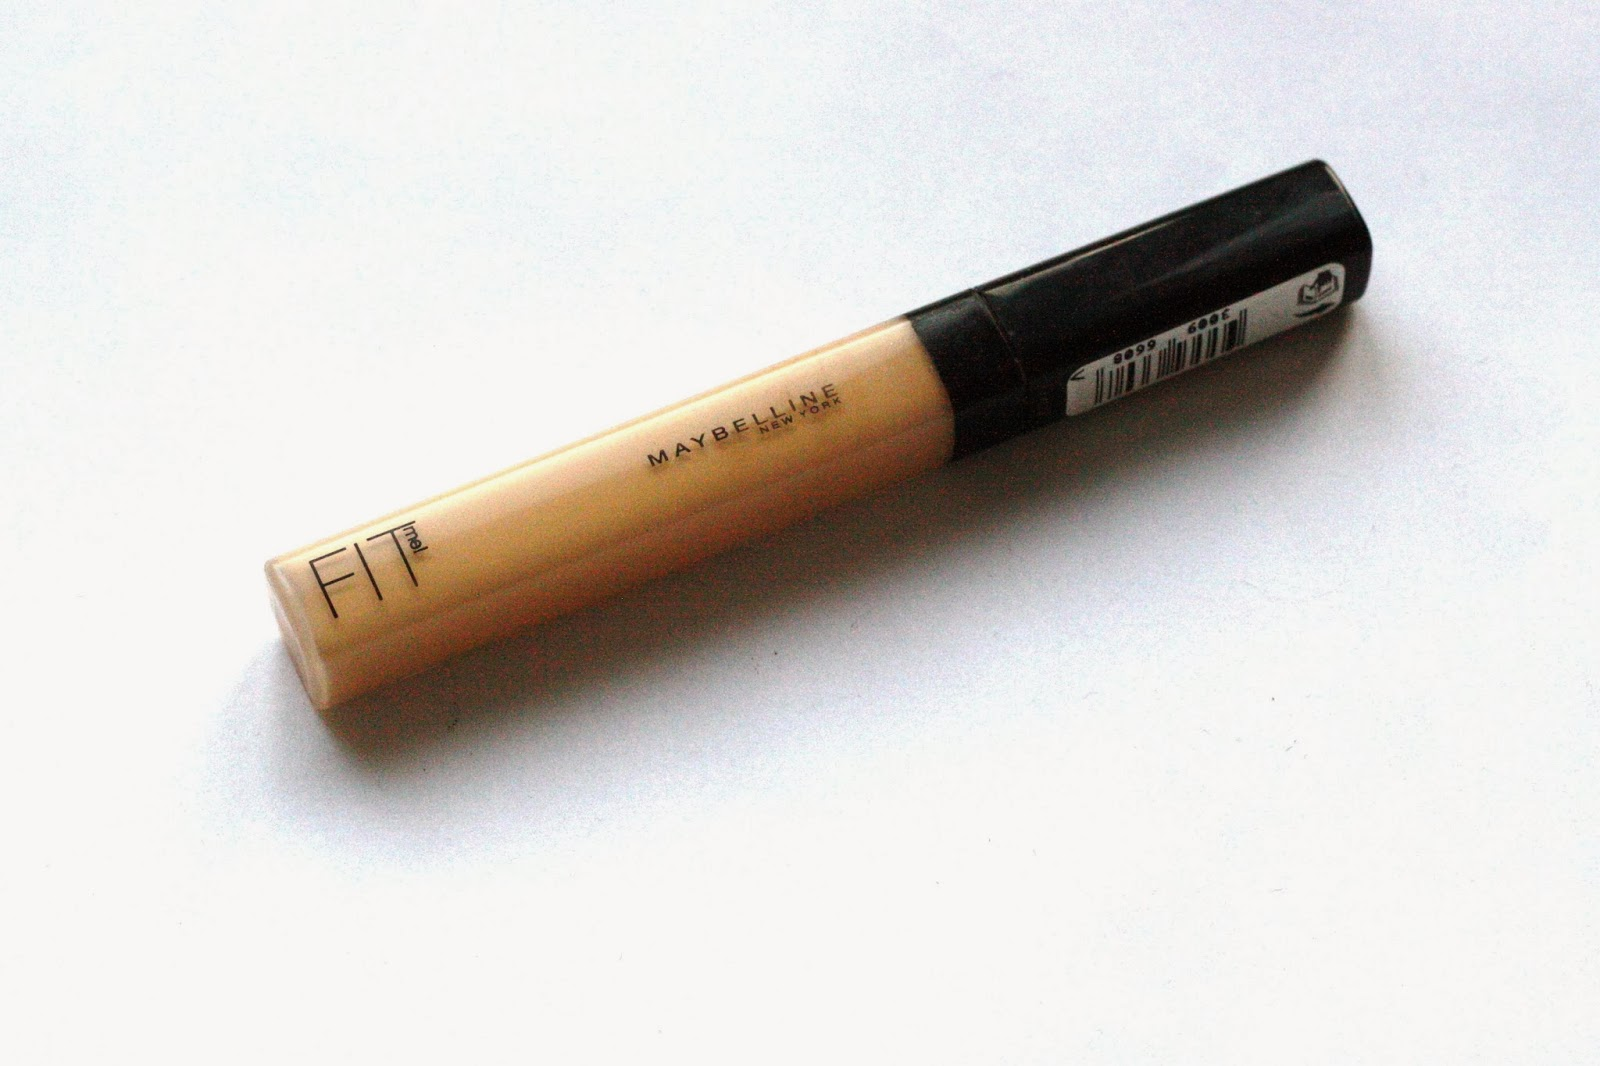 Fit Me Concealer in shade 20